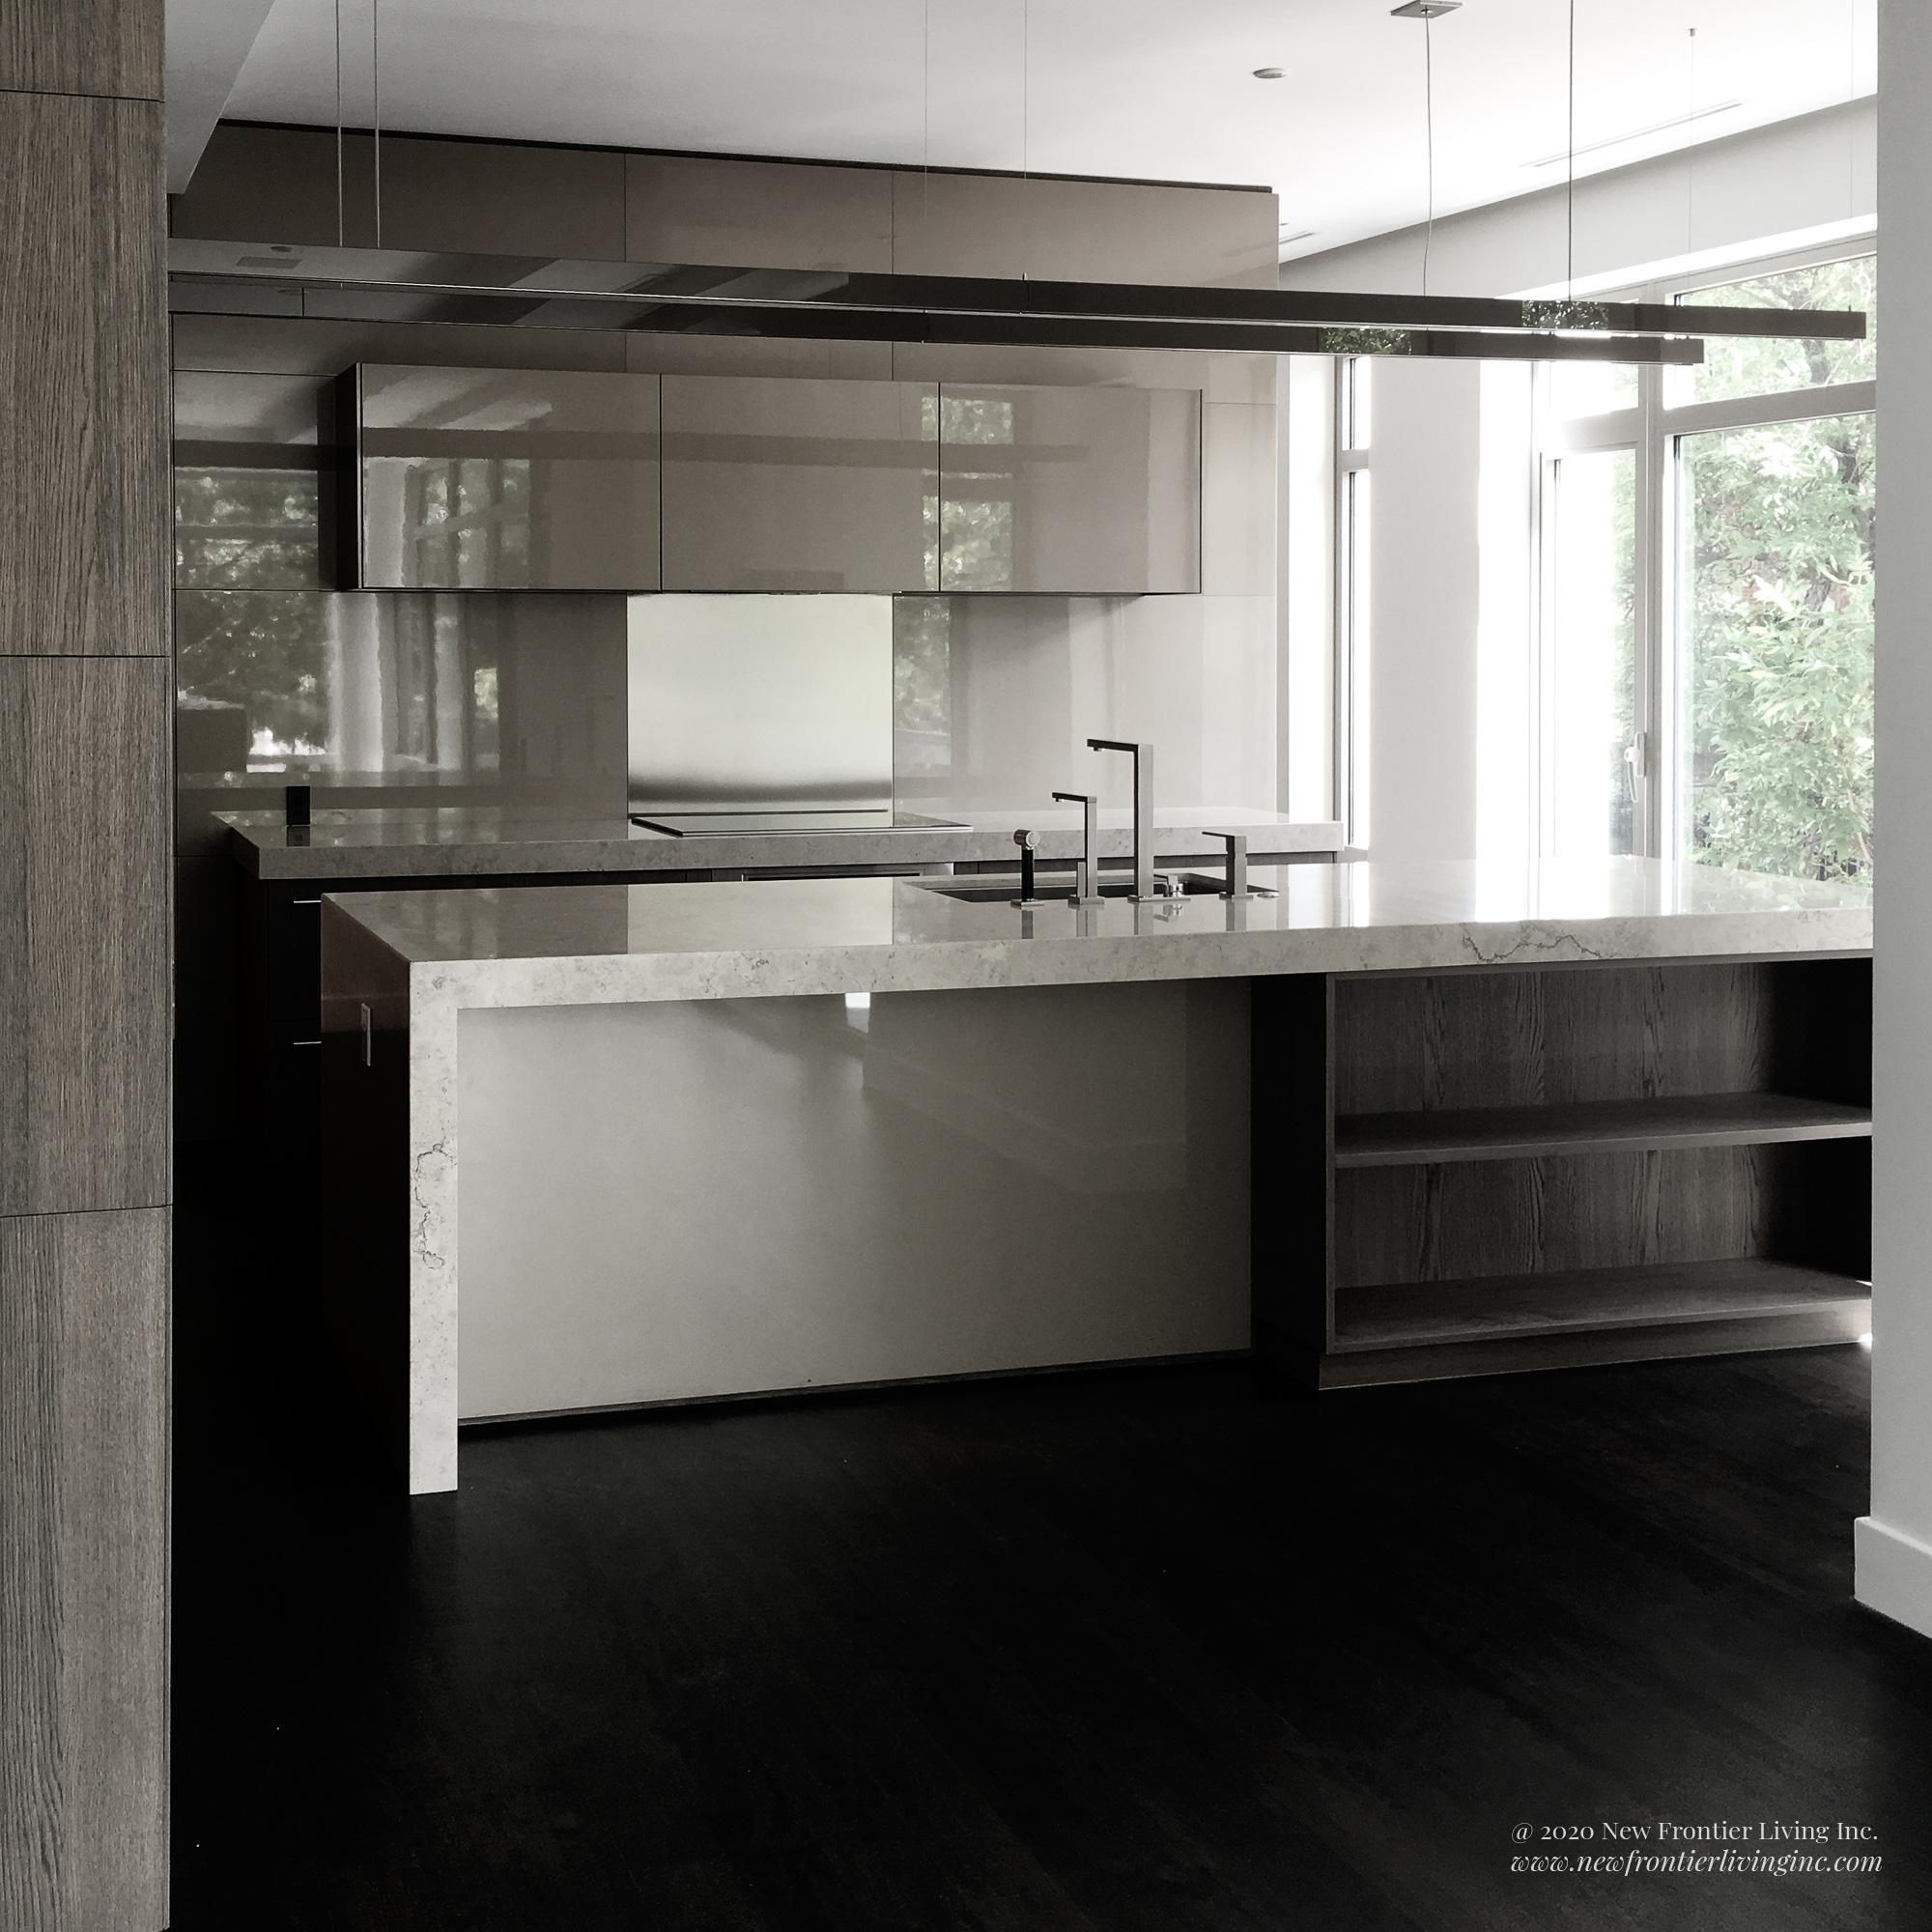 Gray and white waterfall kitchen island with modern sinks and wall cabinetry